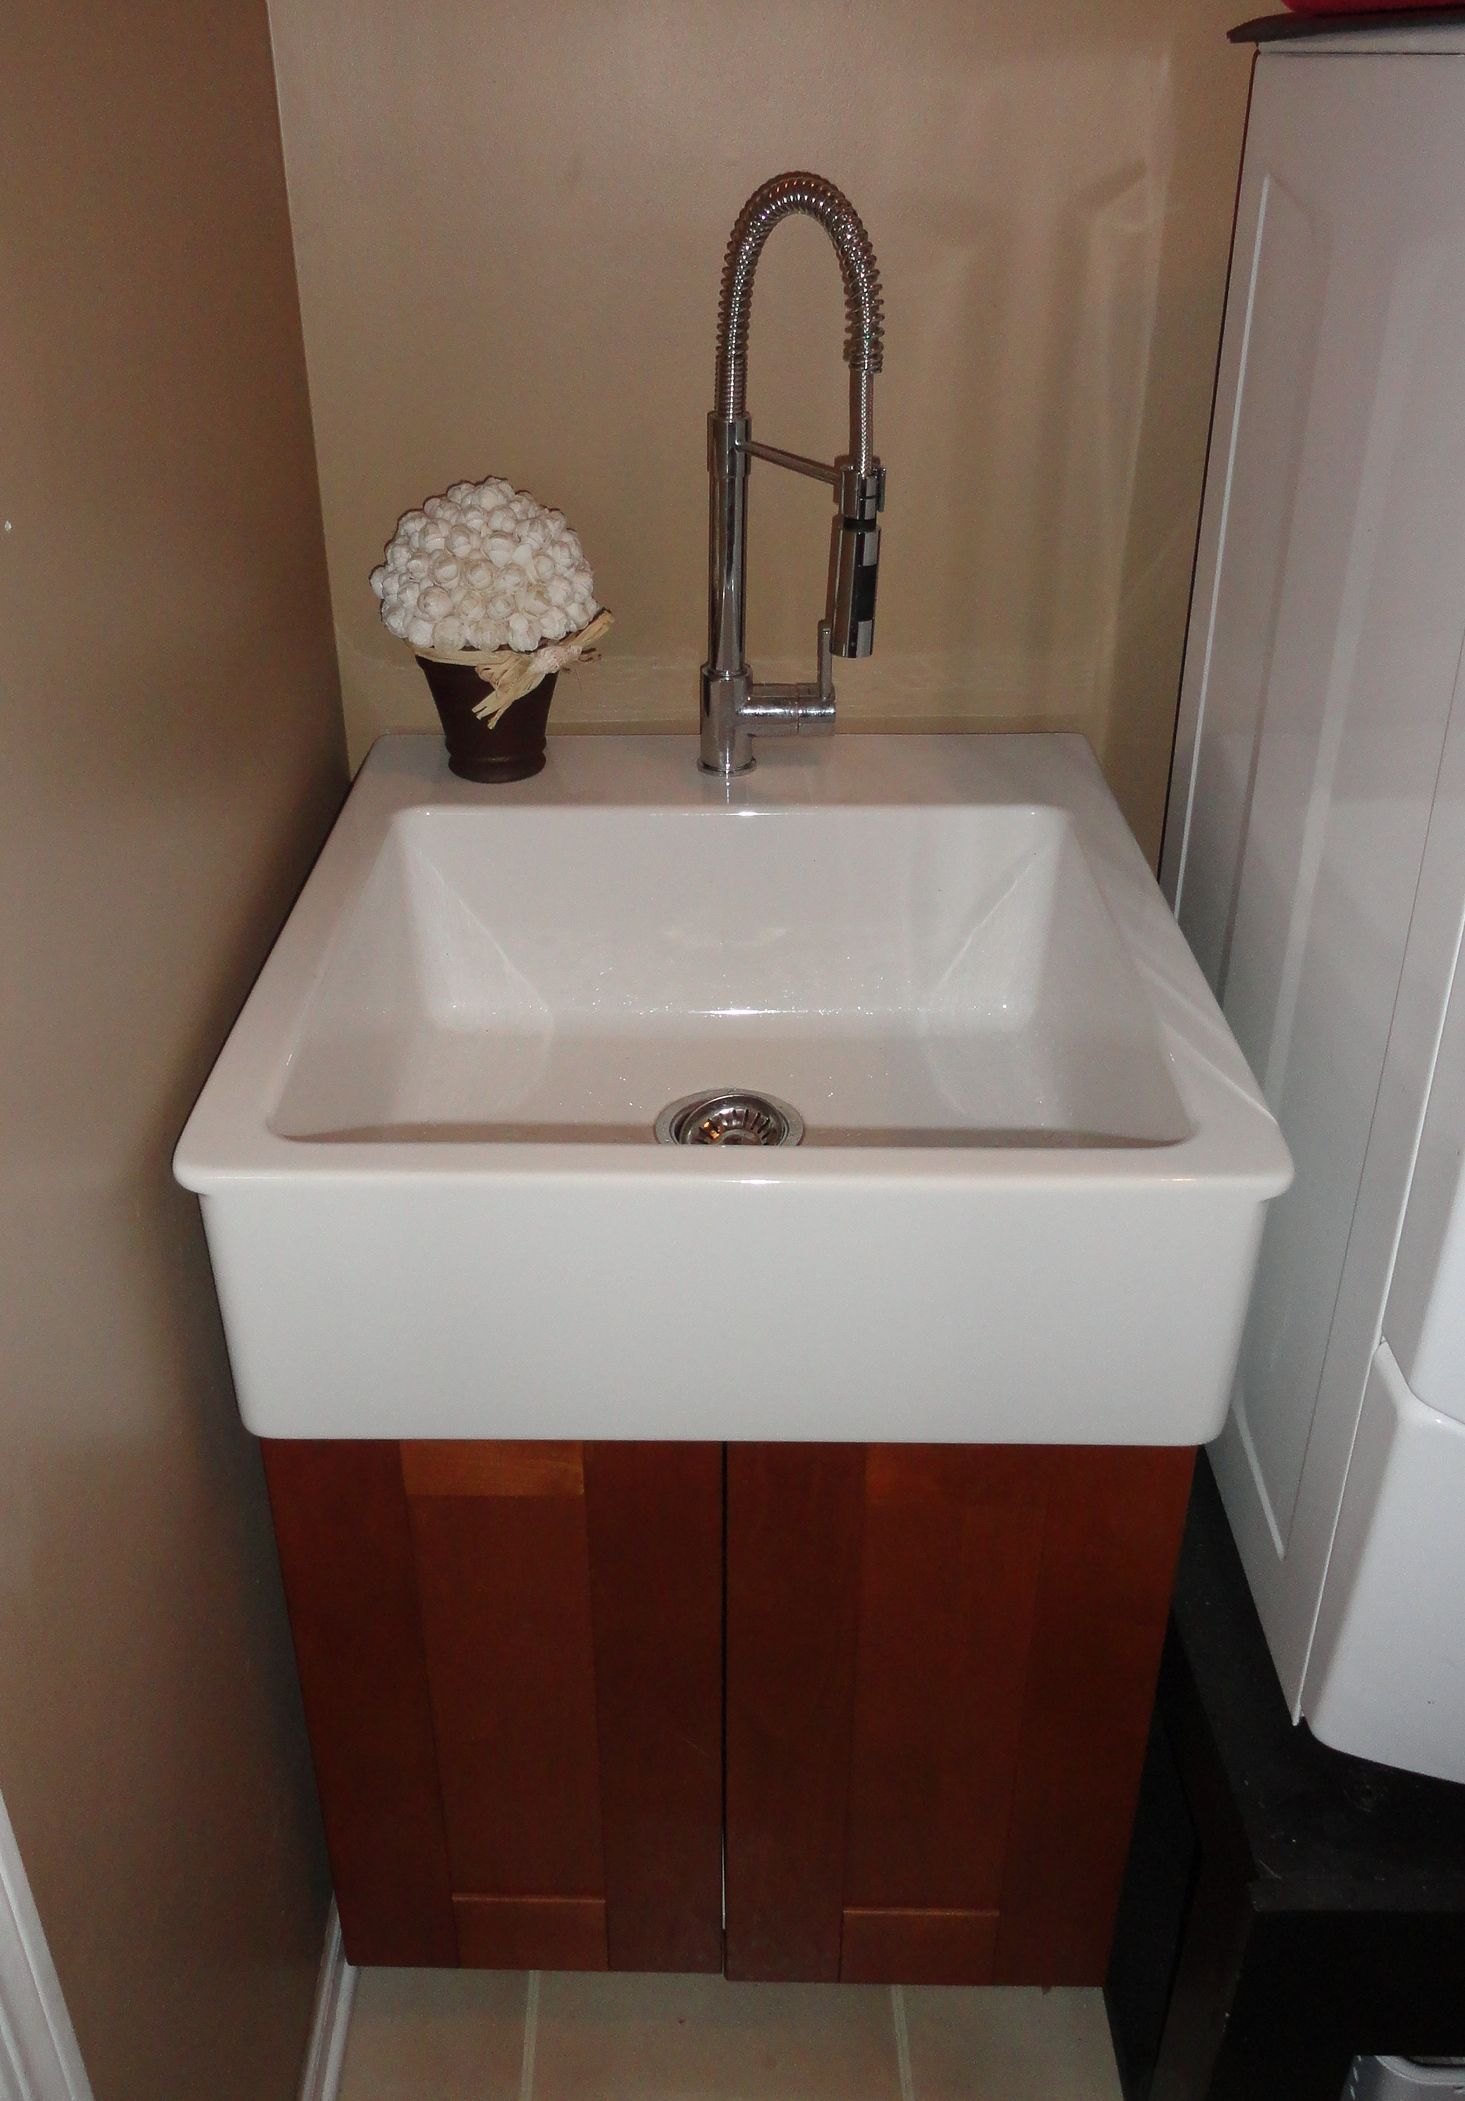 Utility Sink And Cabinet From Ikea